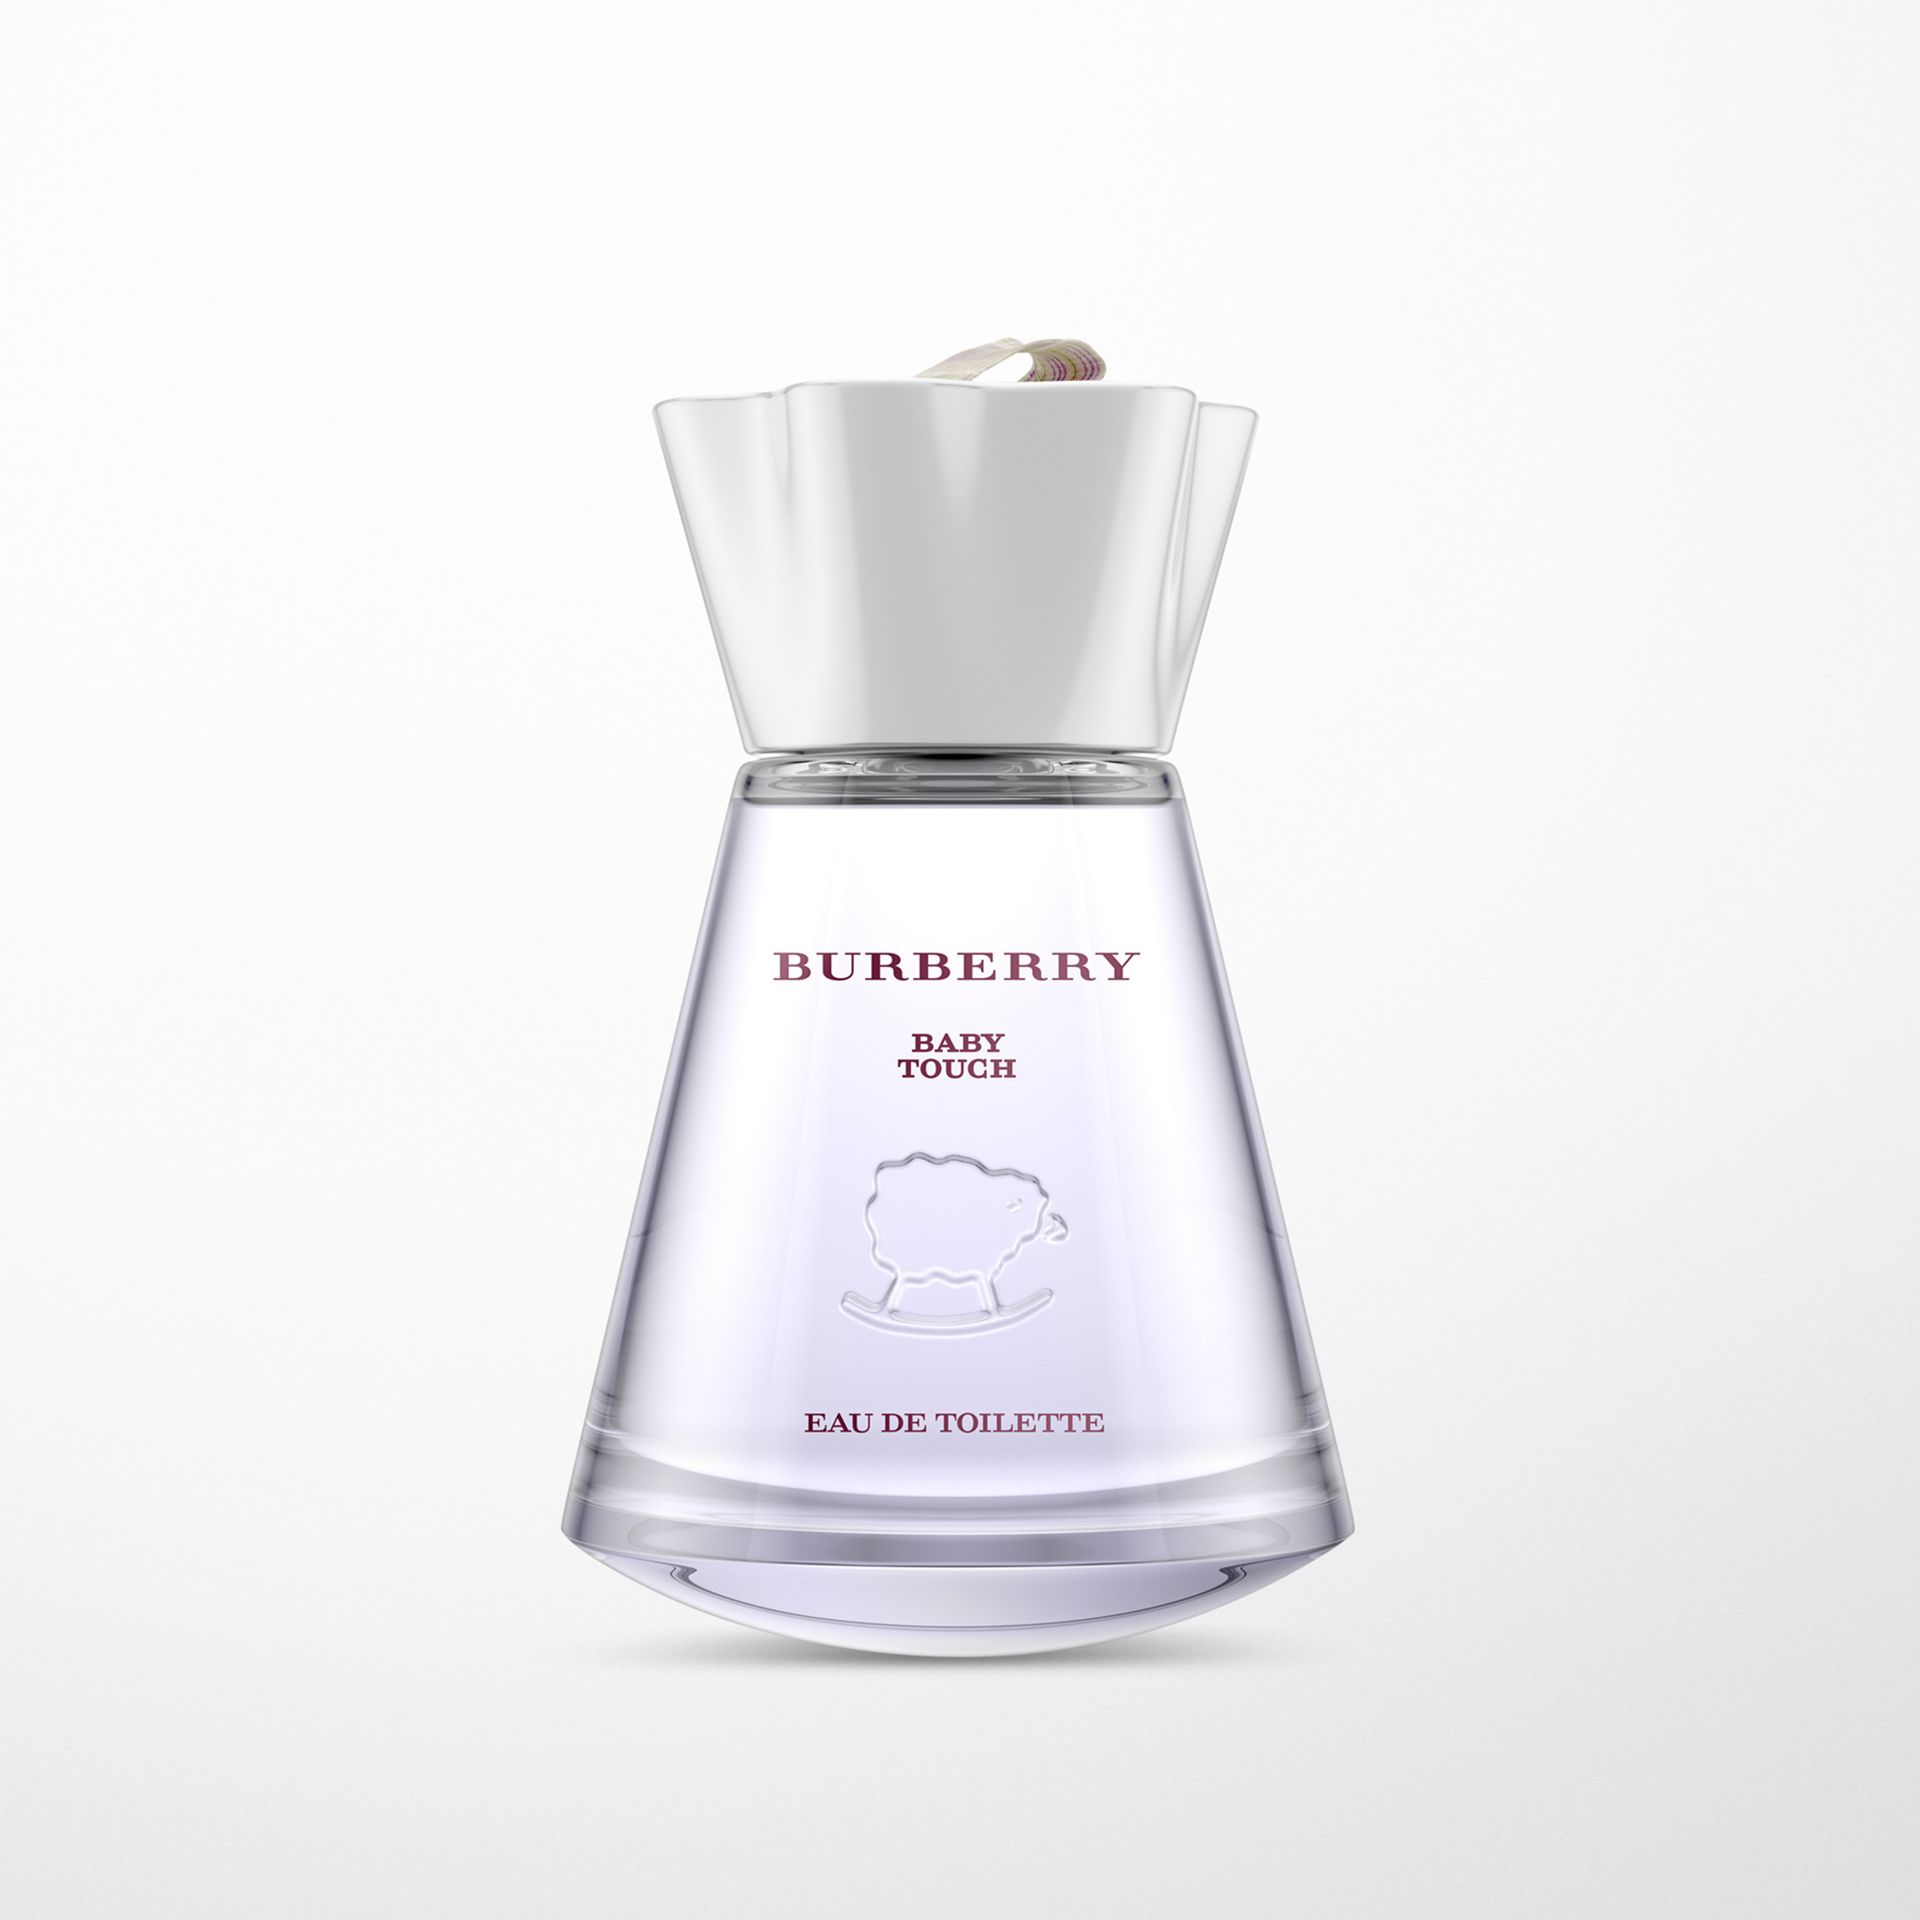 Burberry Baby Touch 100ml - gallery image 2